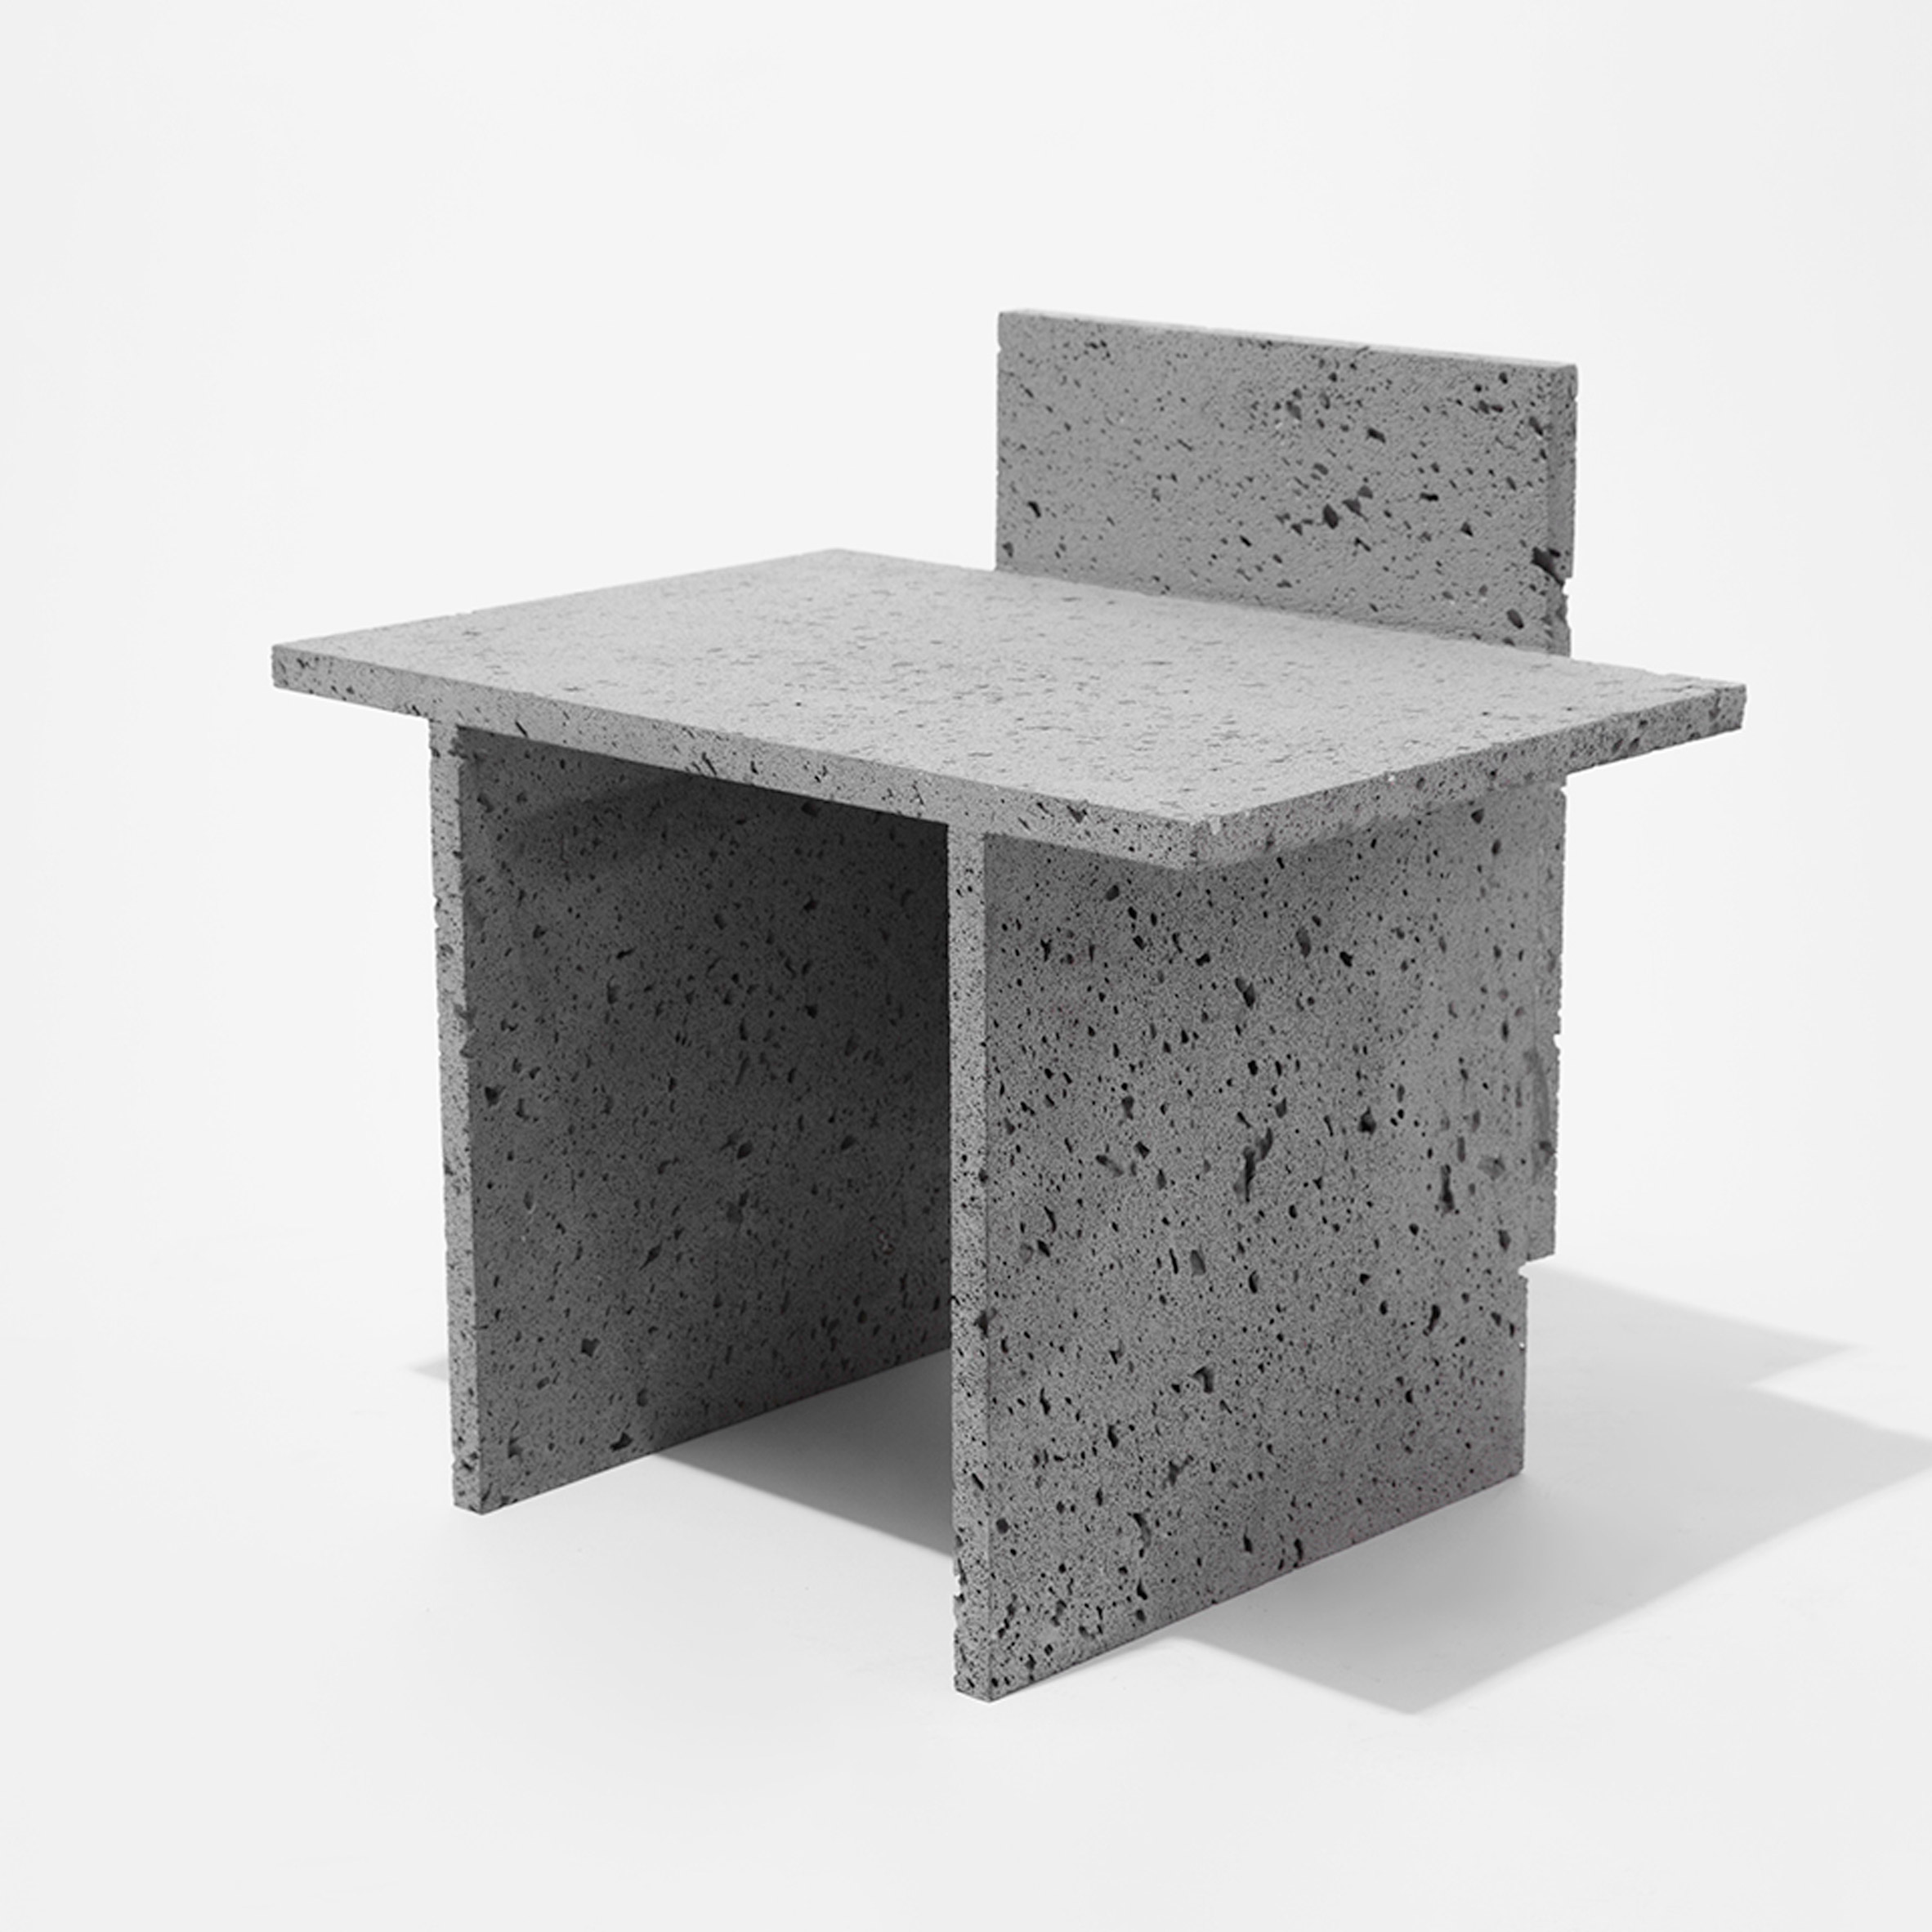 """Brutalist"" furniture features in PL:VV collection by PLDO and Savvy"